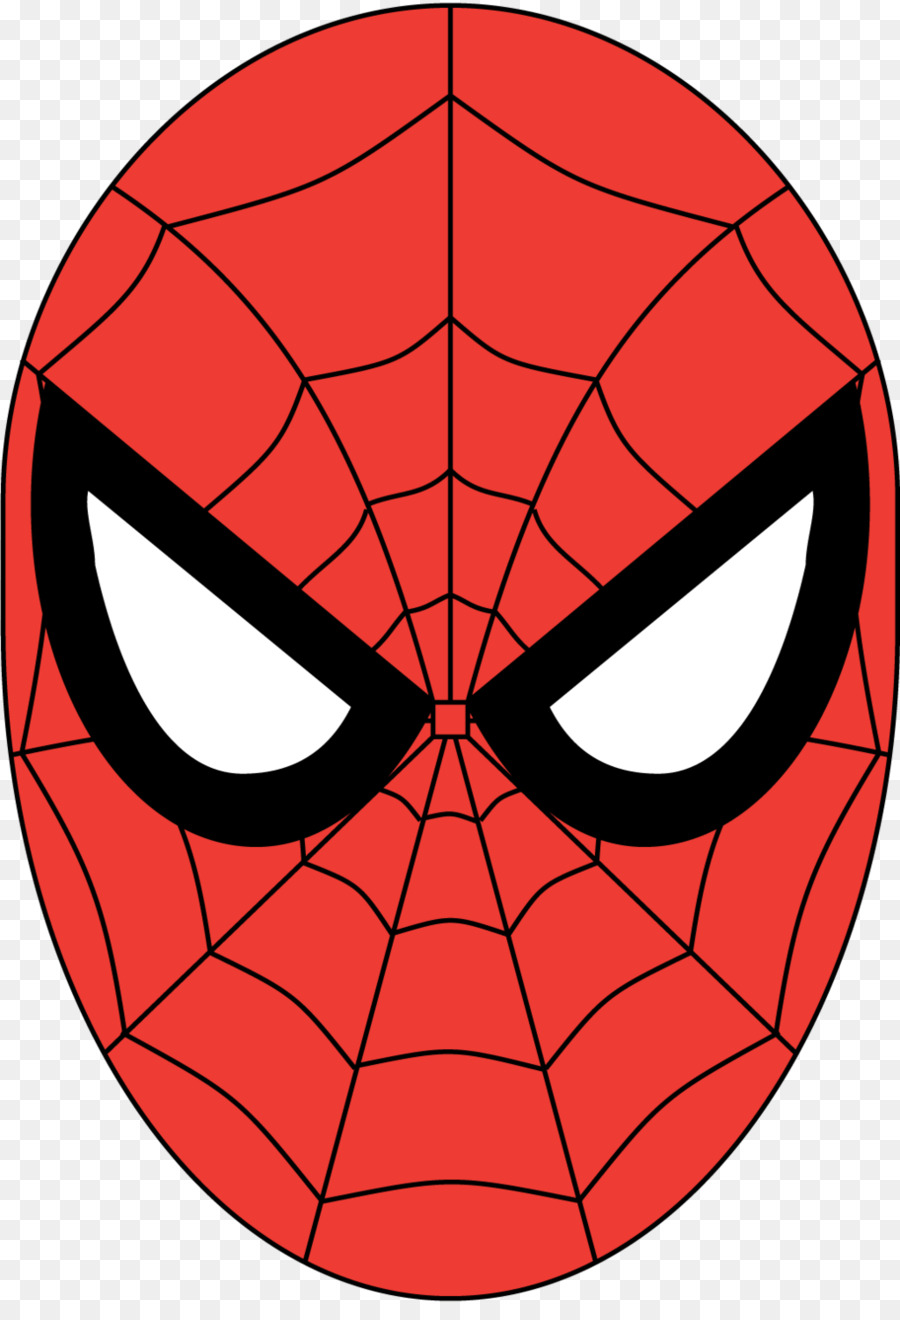 Spiderman face clipart 5 » Clipart Station.